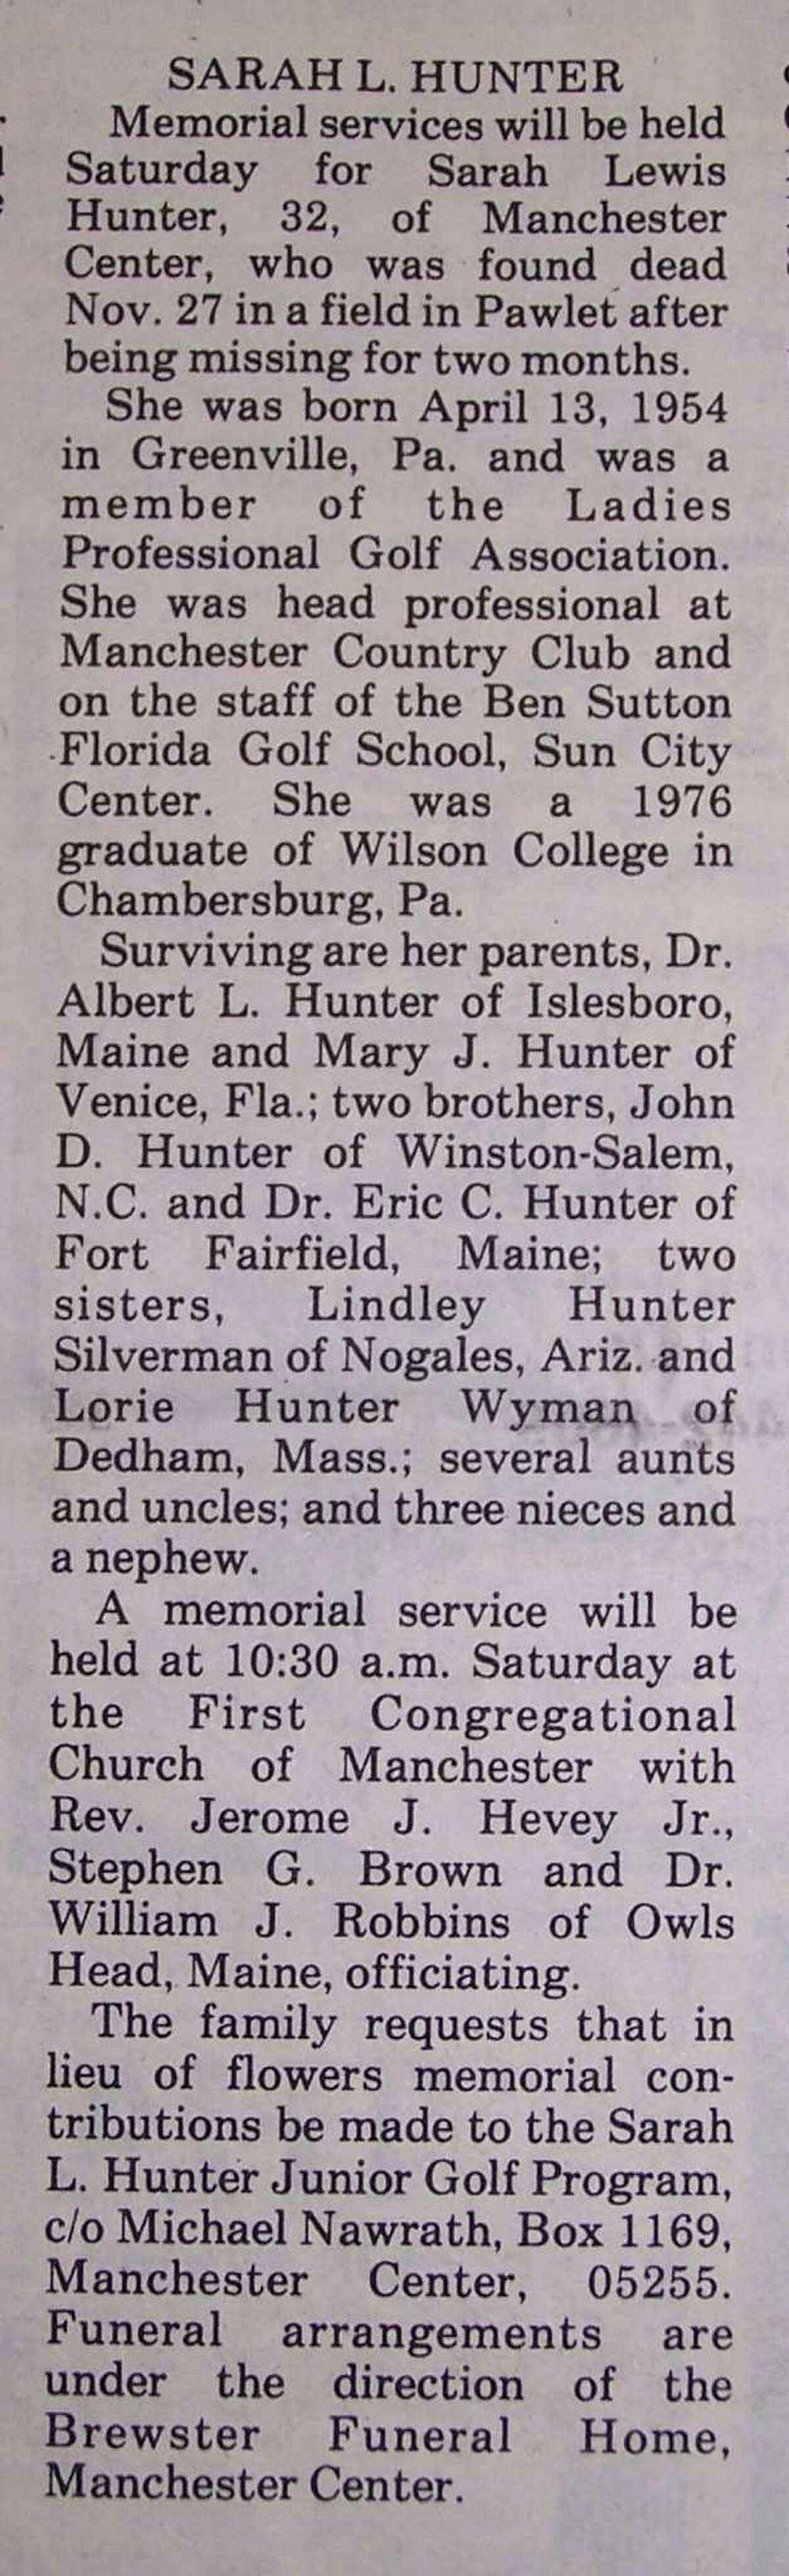 Sarah Hunter's obituary notice. More than 300 people packed the services in the small town of 3,200.